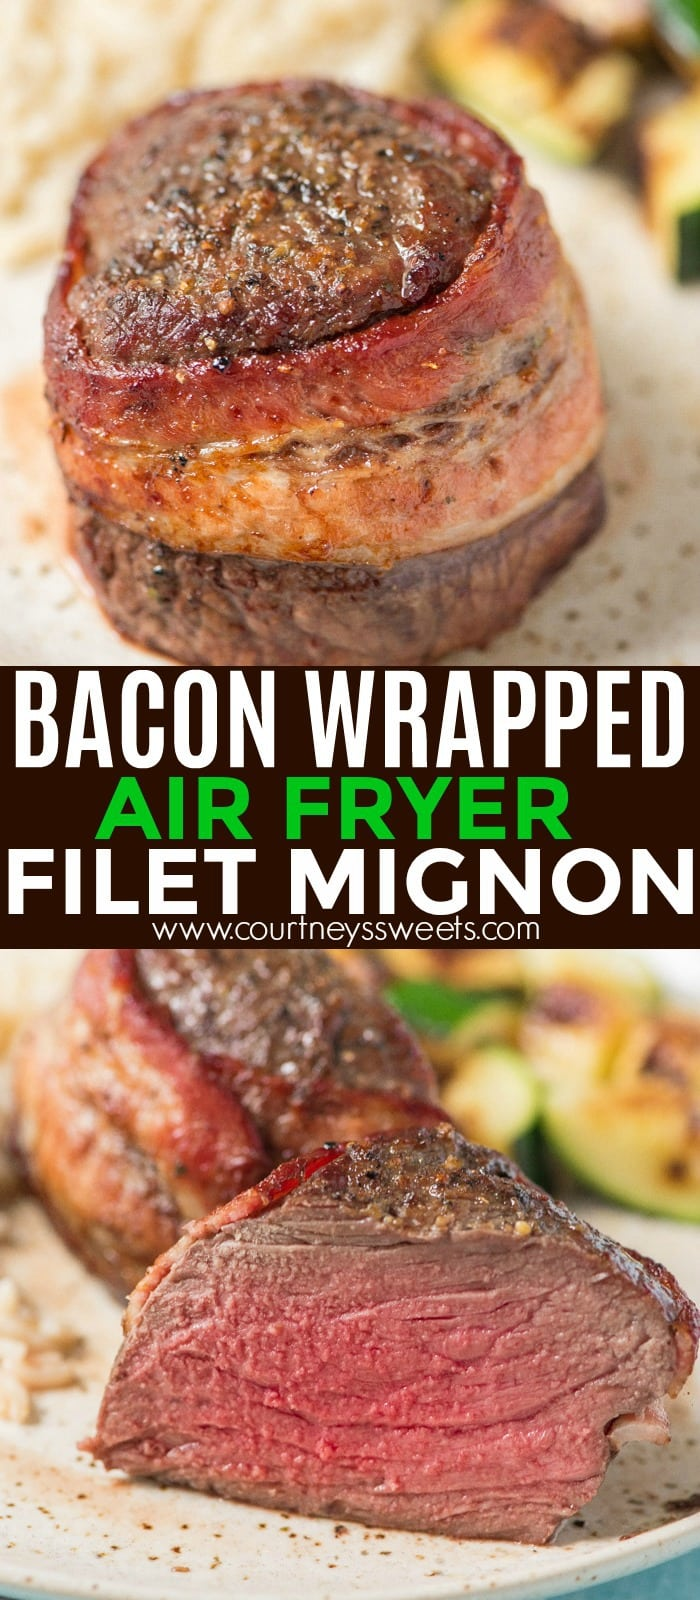 air fryer bacon wrapped filet mignon recipe